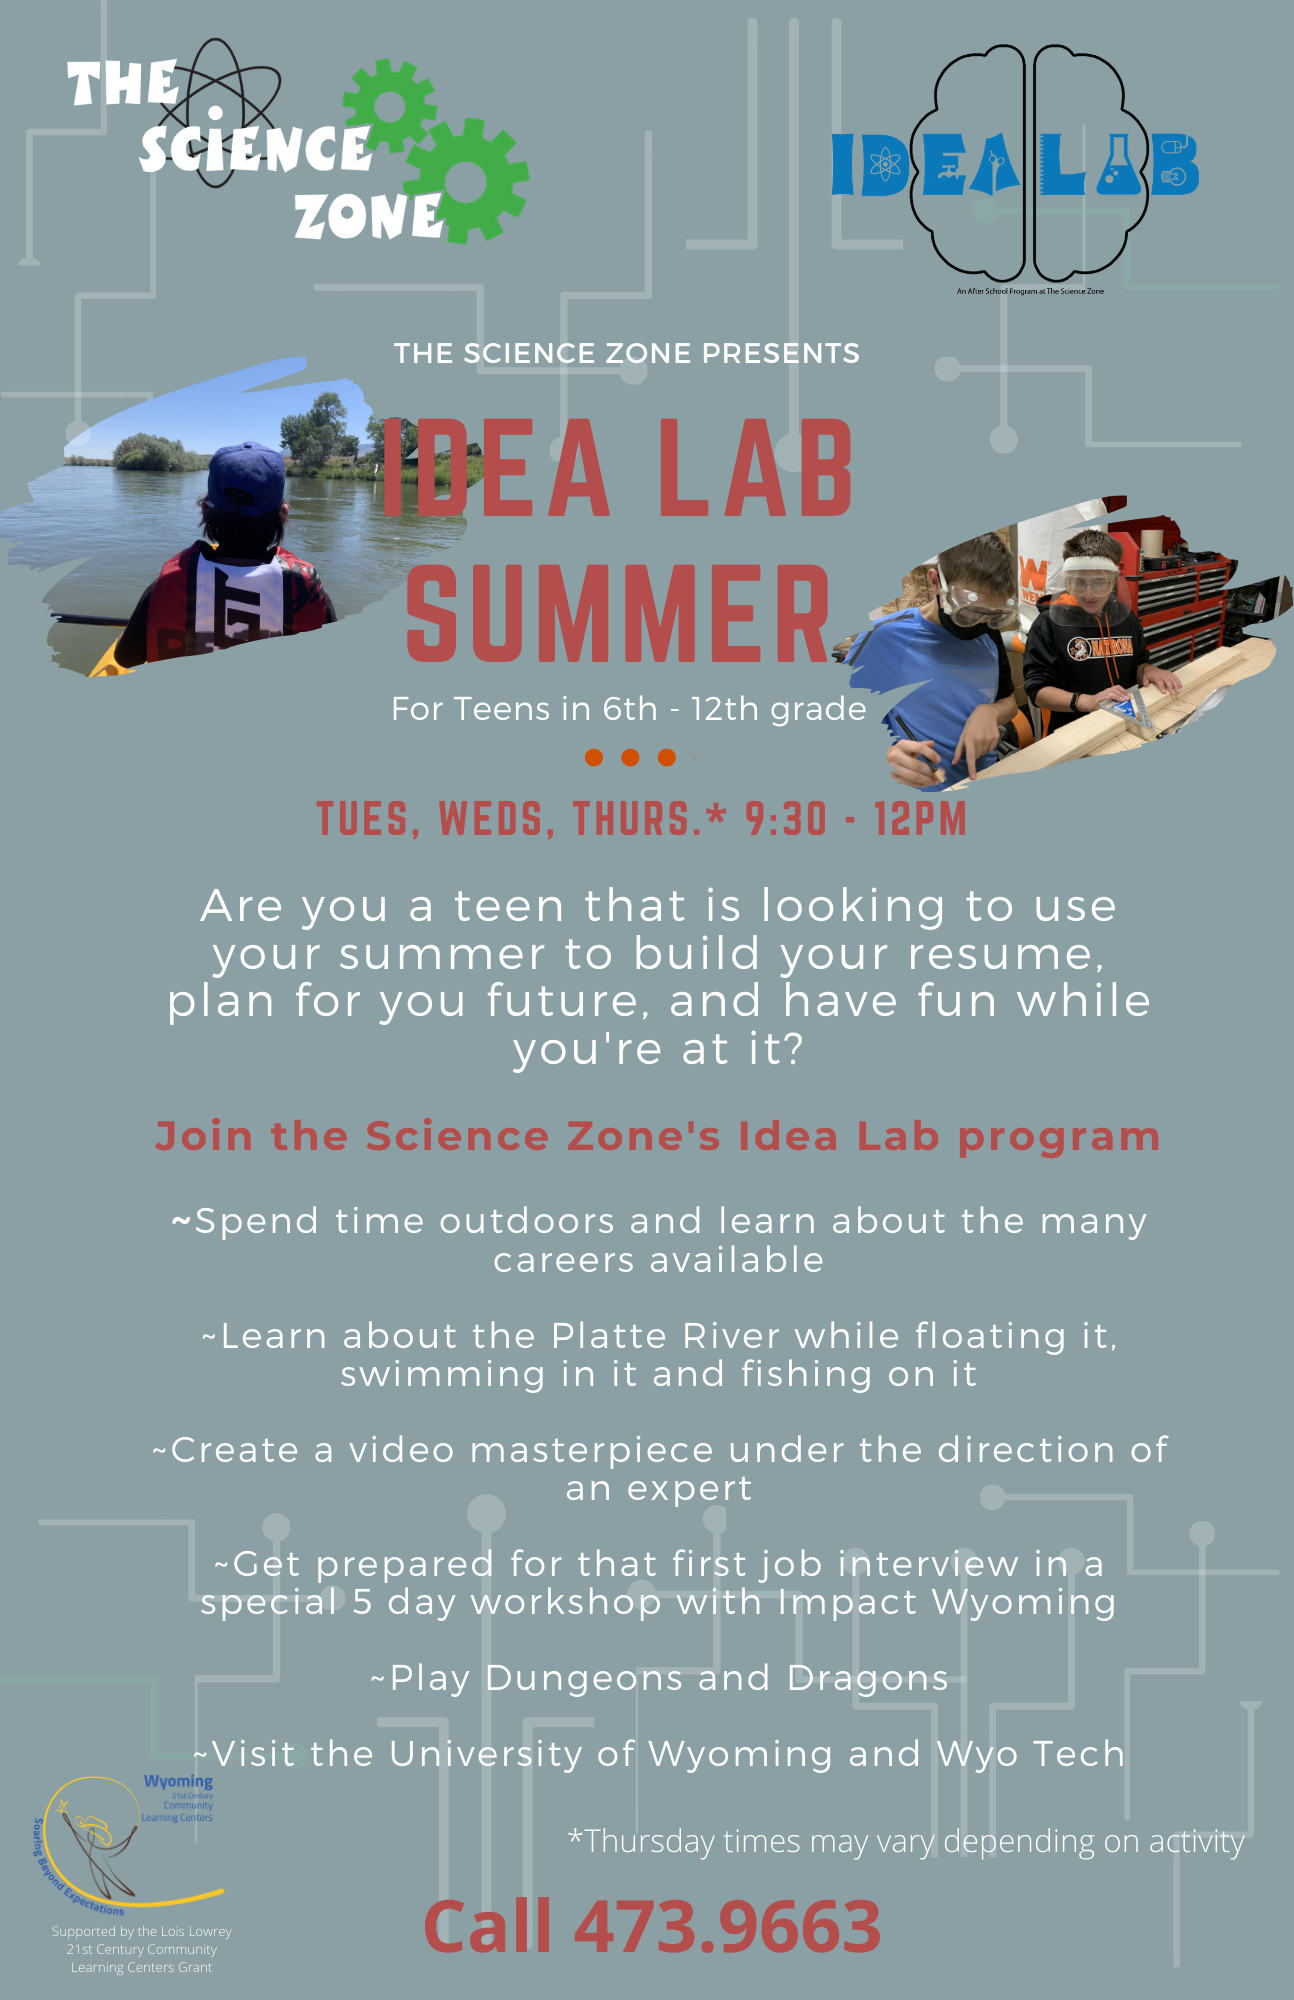 Science Zone Idea Lab Summer program flyer